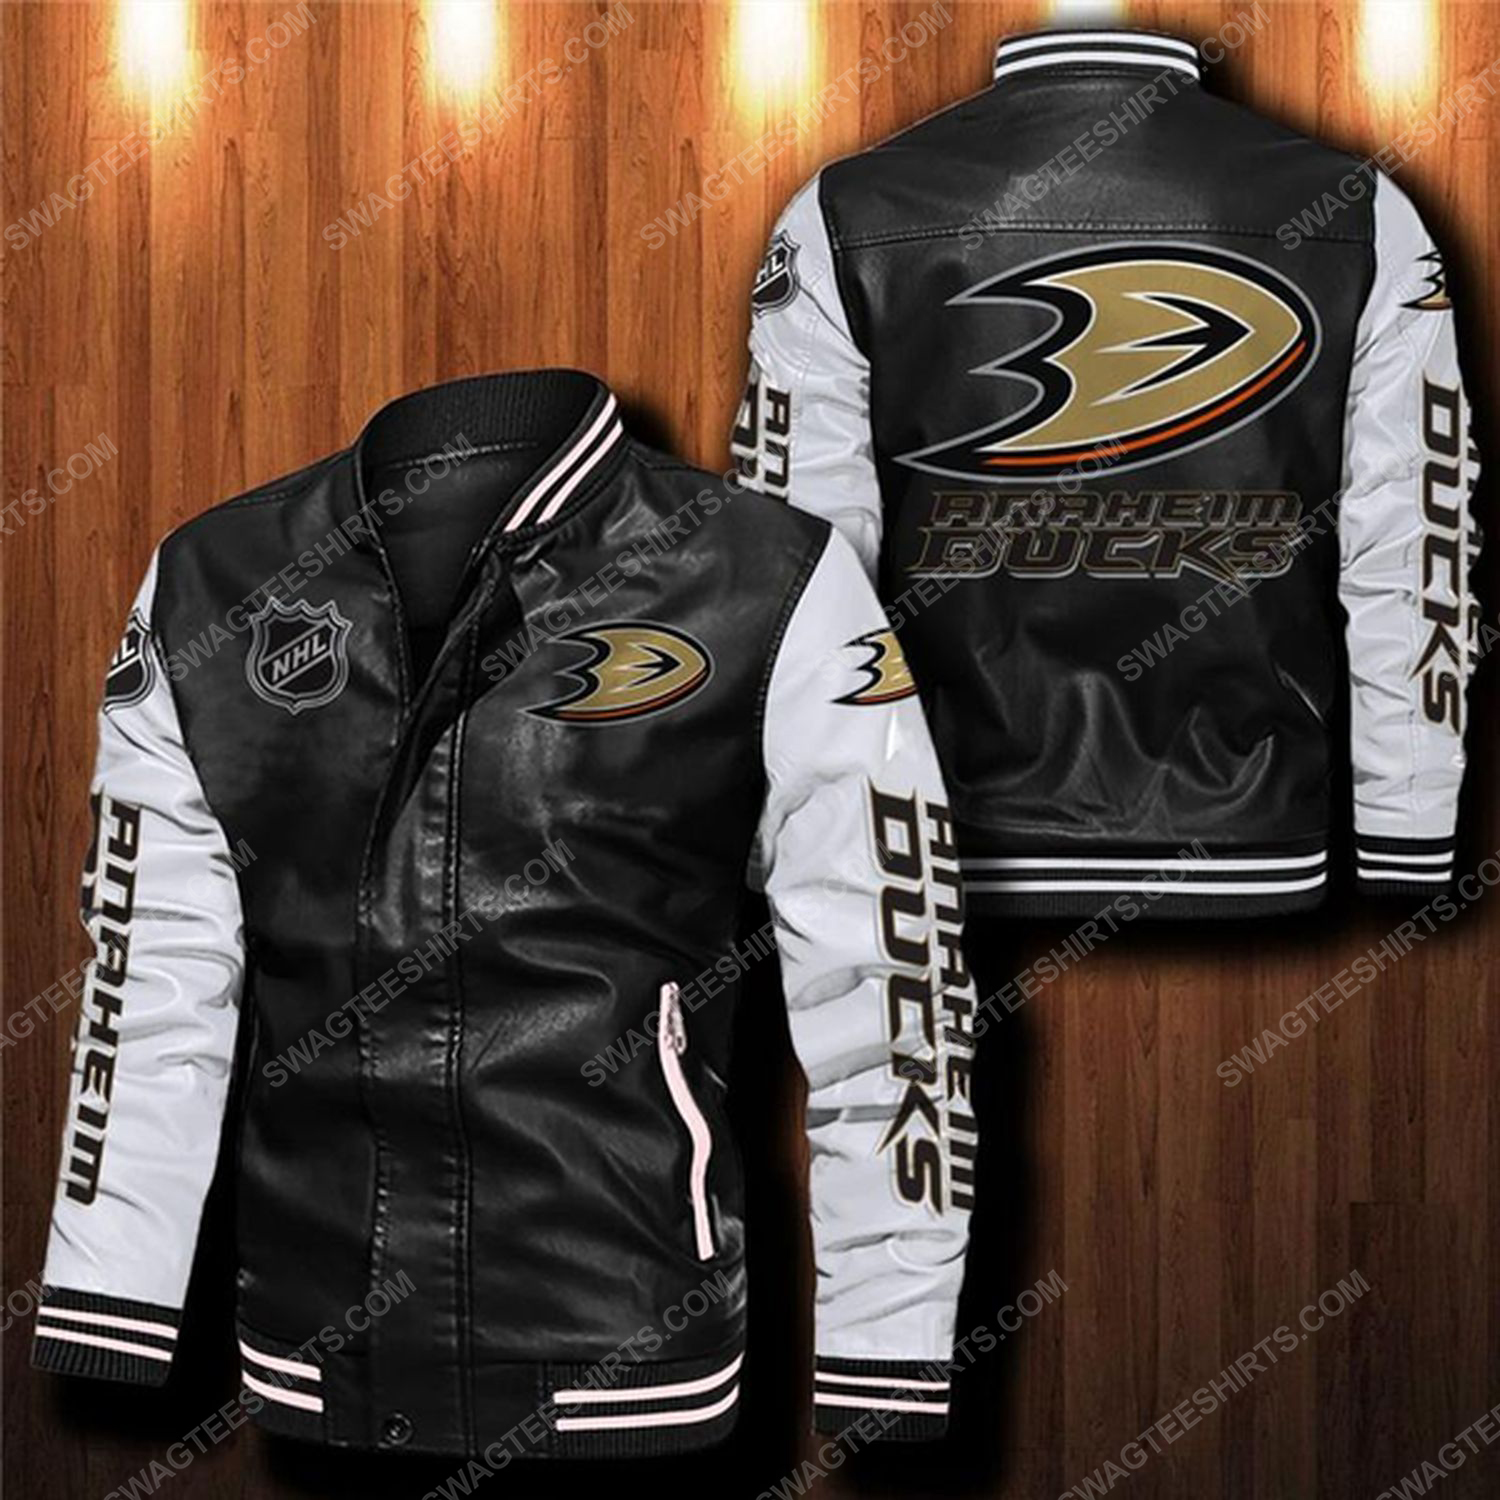 Anaheim ducks all over print leather bomber jacket - white